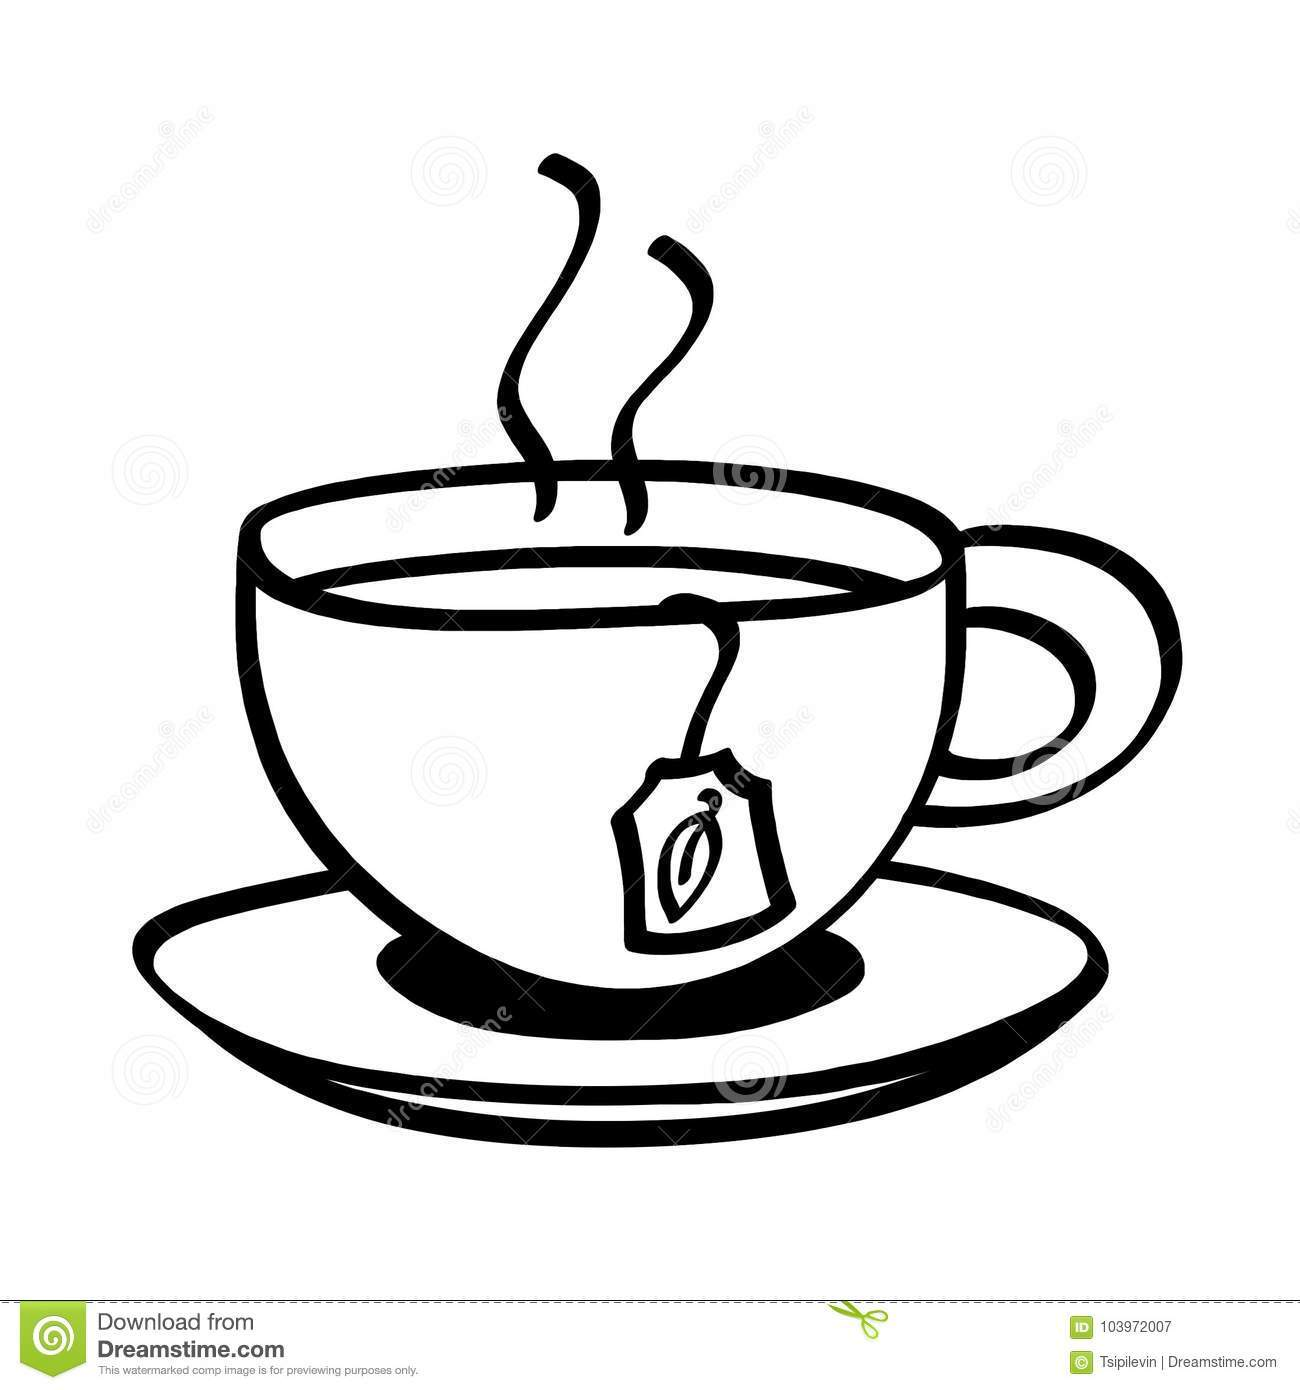 Cup of tea clipart black and white 3 » Clipart Portal.